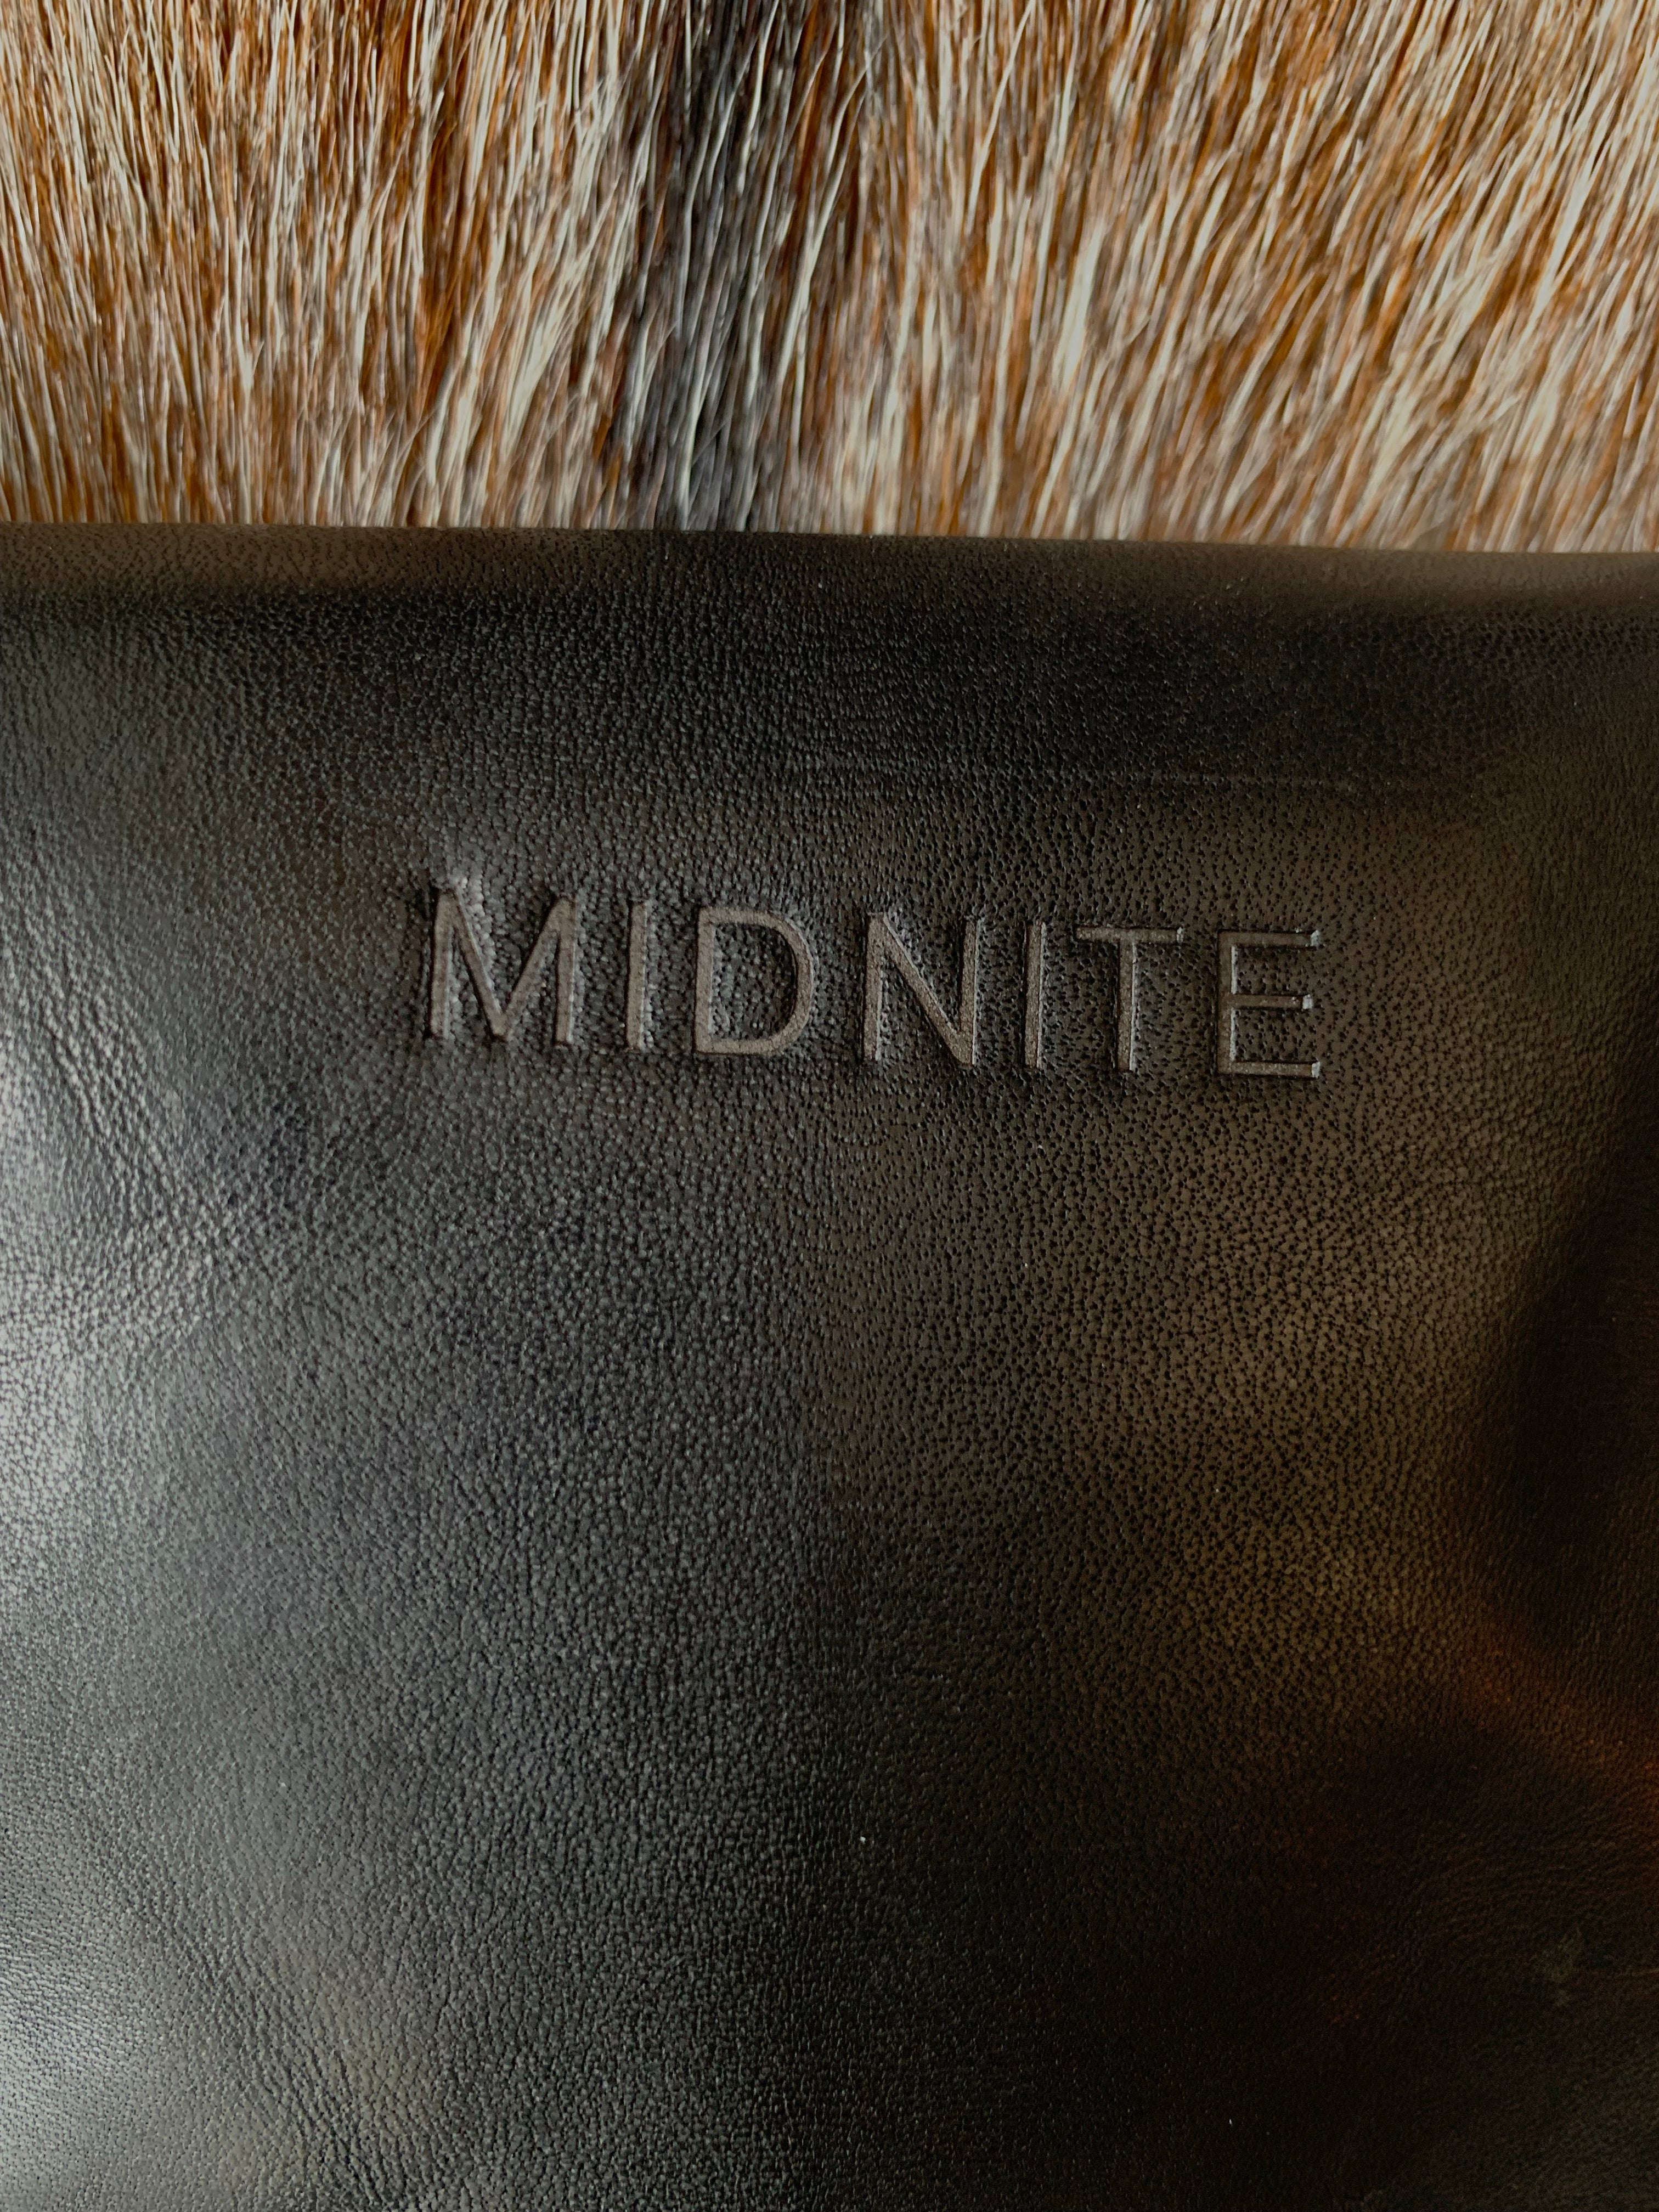 Midnite Leather Brand Fringe Belt Bag